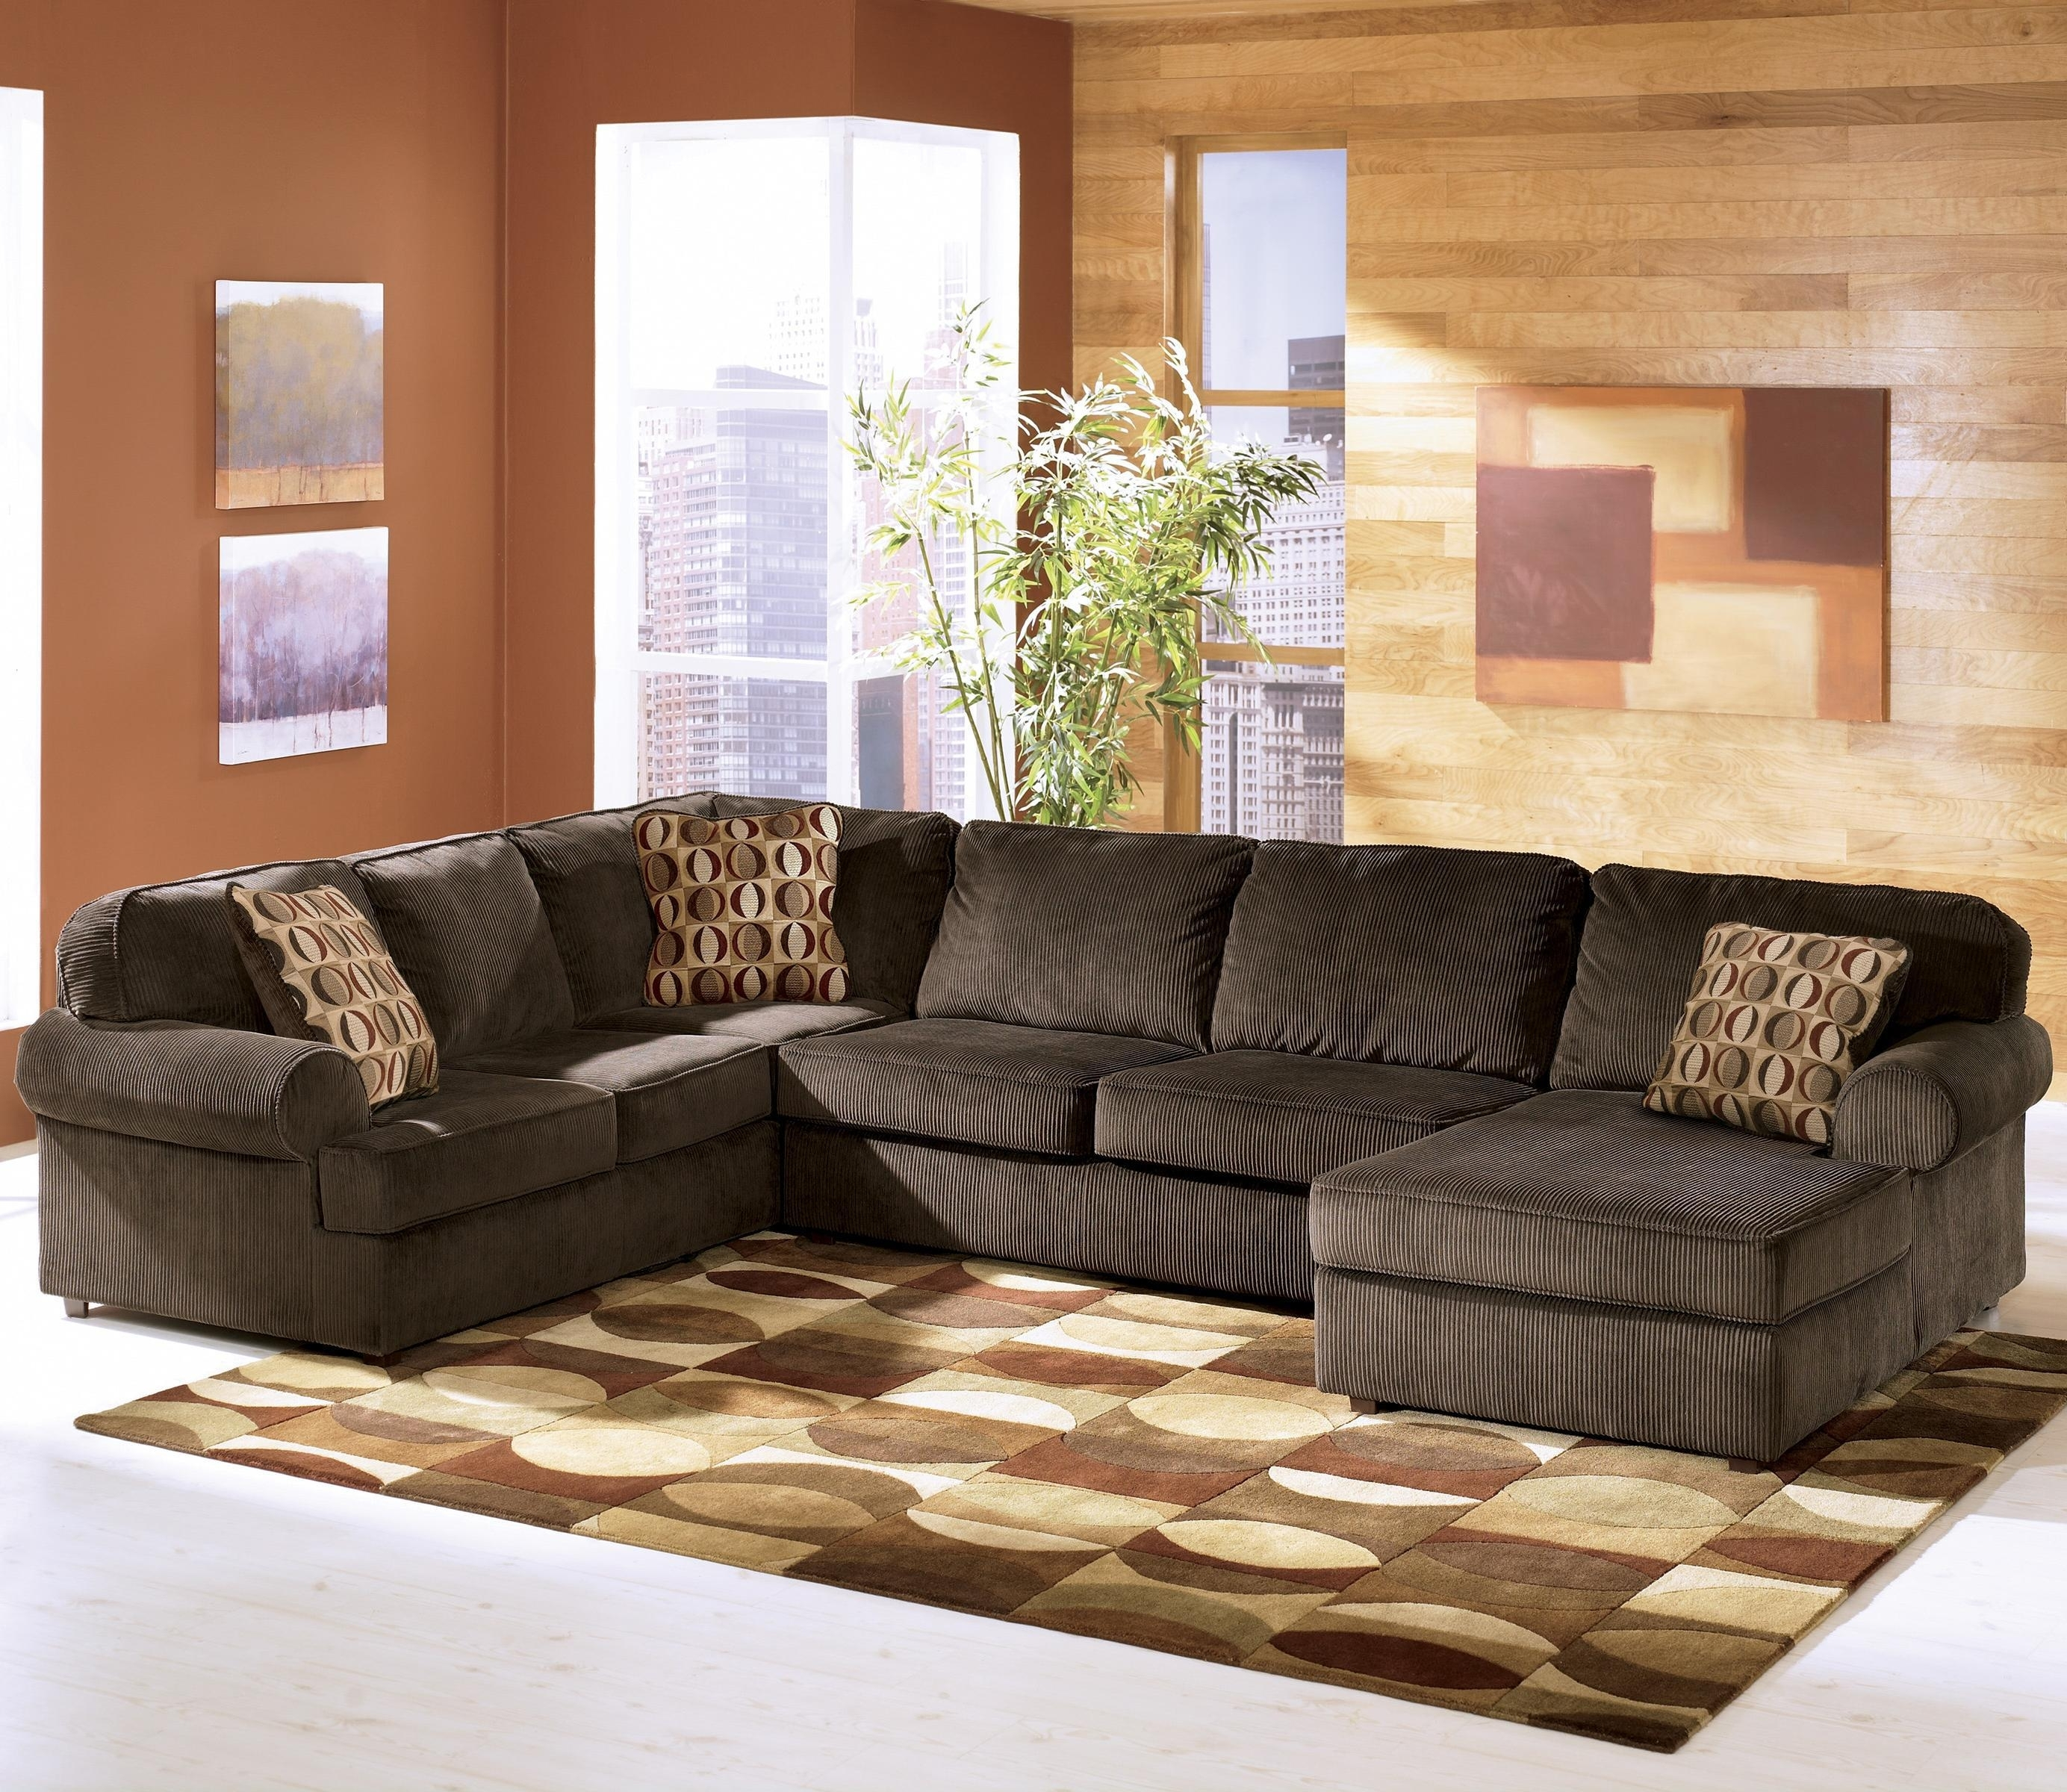 Aifaresidency Throughout Well Liked Sectional Sofas At Ashley Furniture (View 3 of 20)